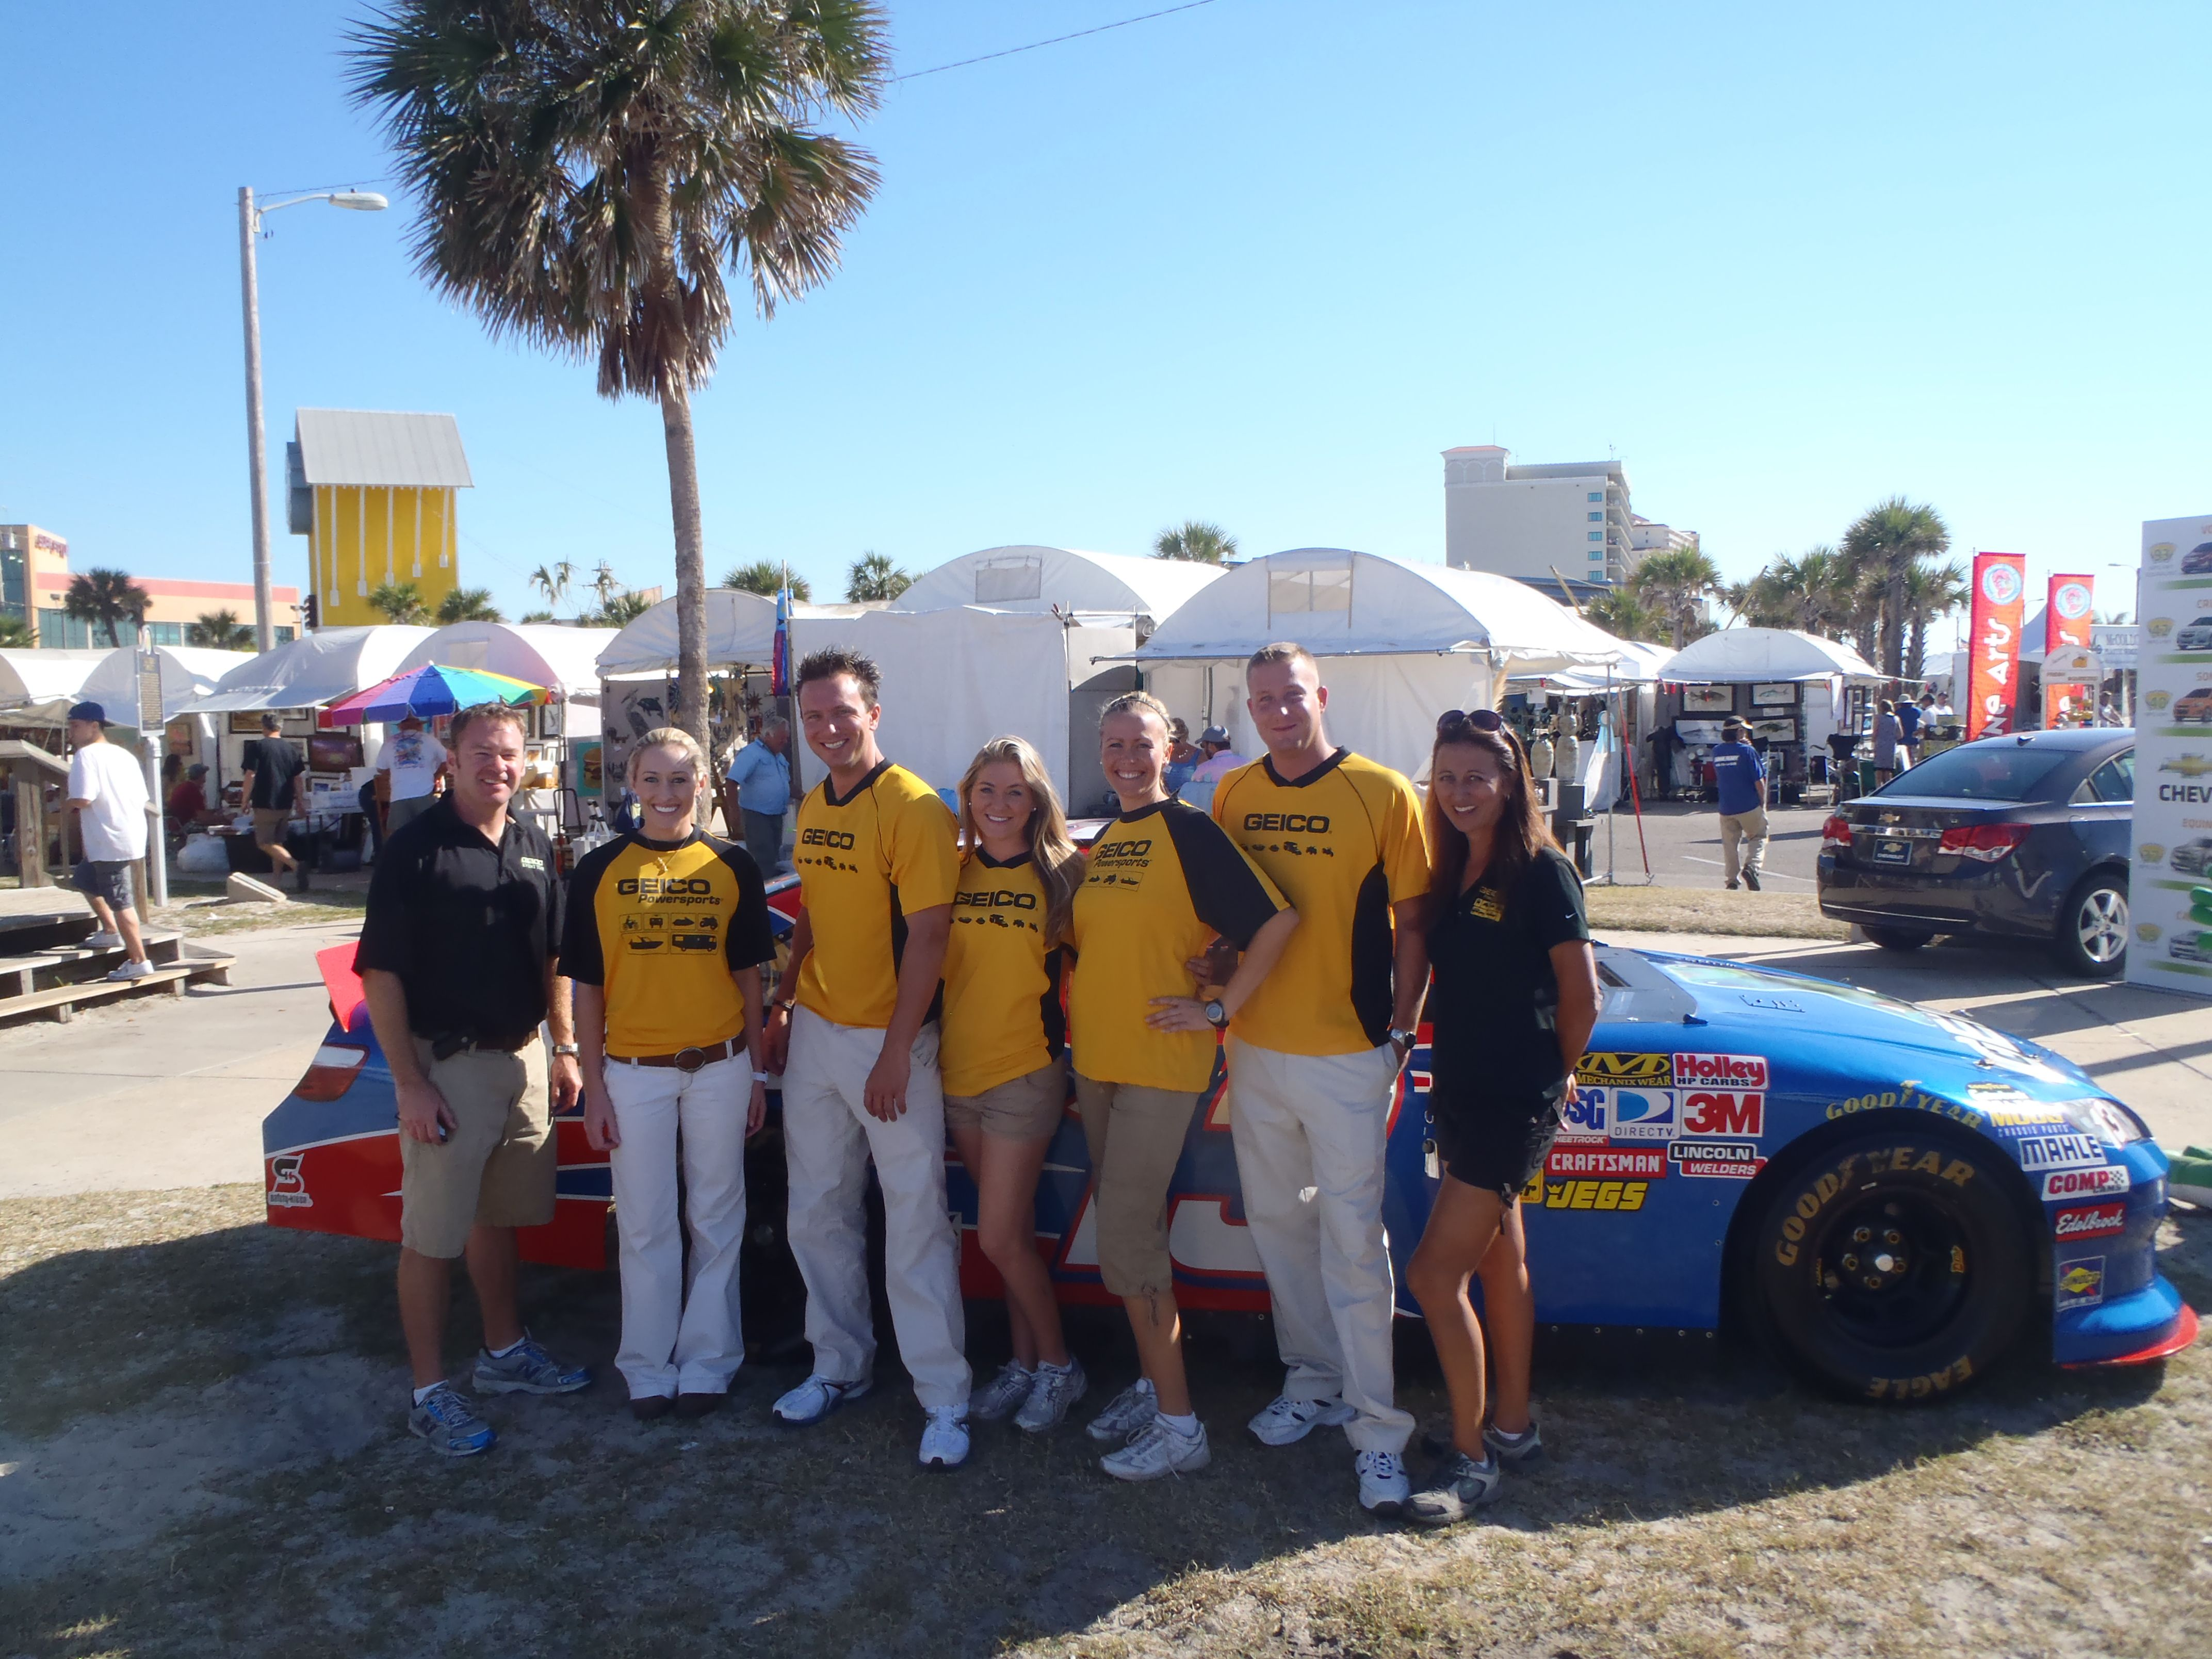 Gulf Shores Shrimp Festival.  One of the best events, Brand Ambassadors, and managers I ever worked with.